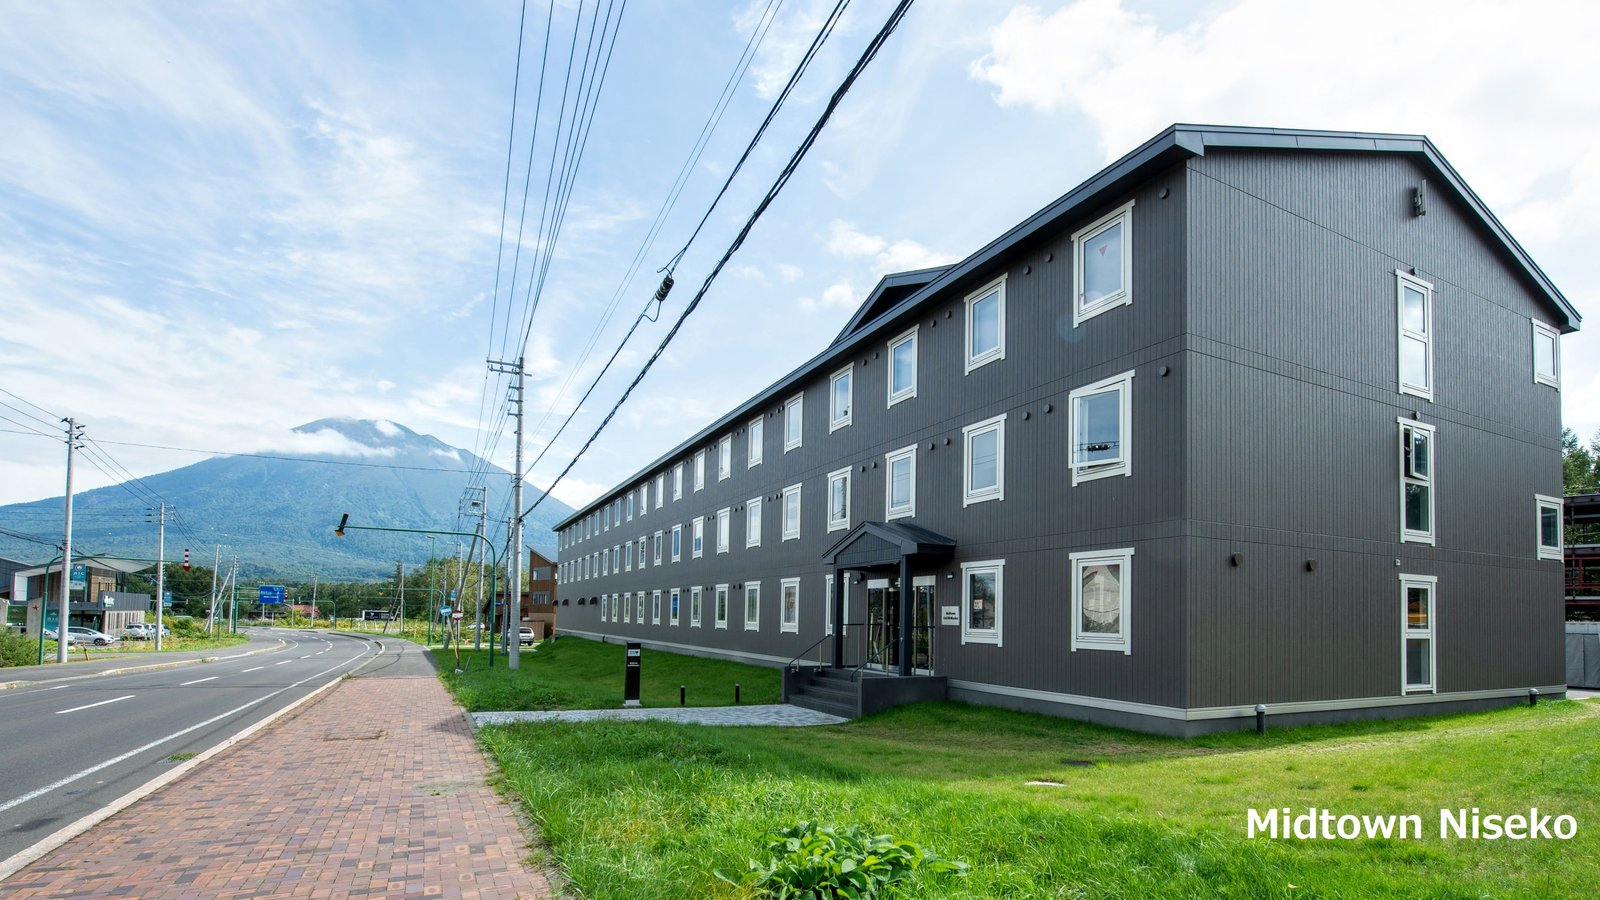 Midtown Niseko - Brand new budget accommodation in Niseko that offer best value in town.